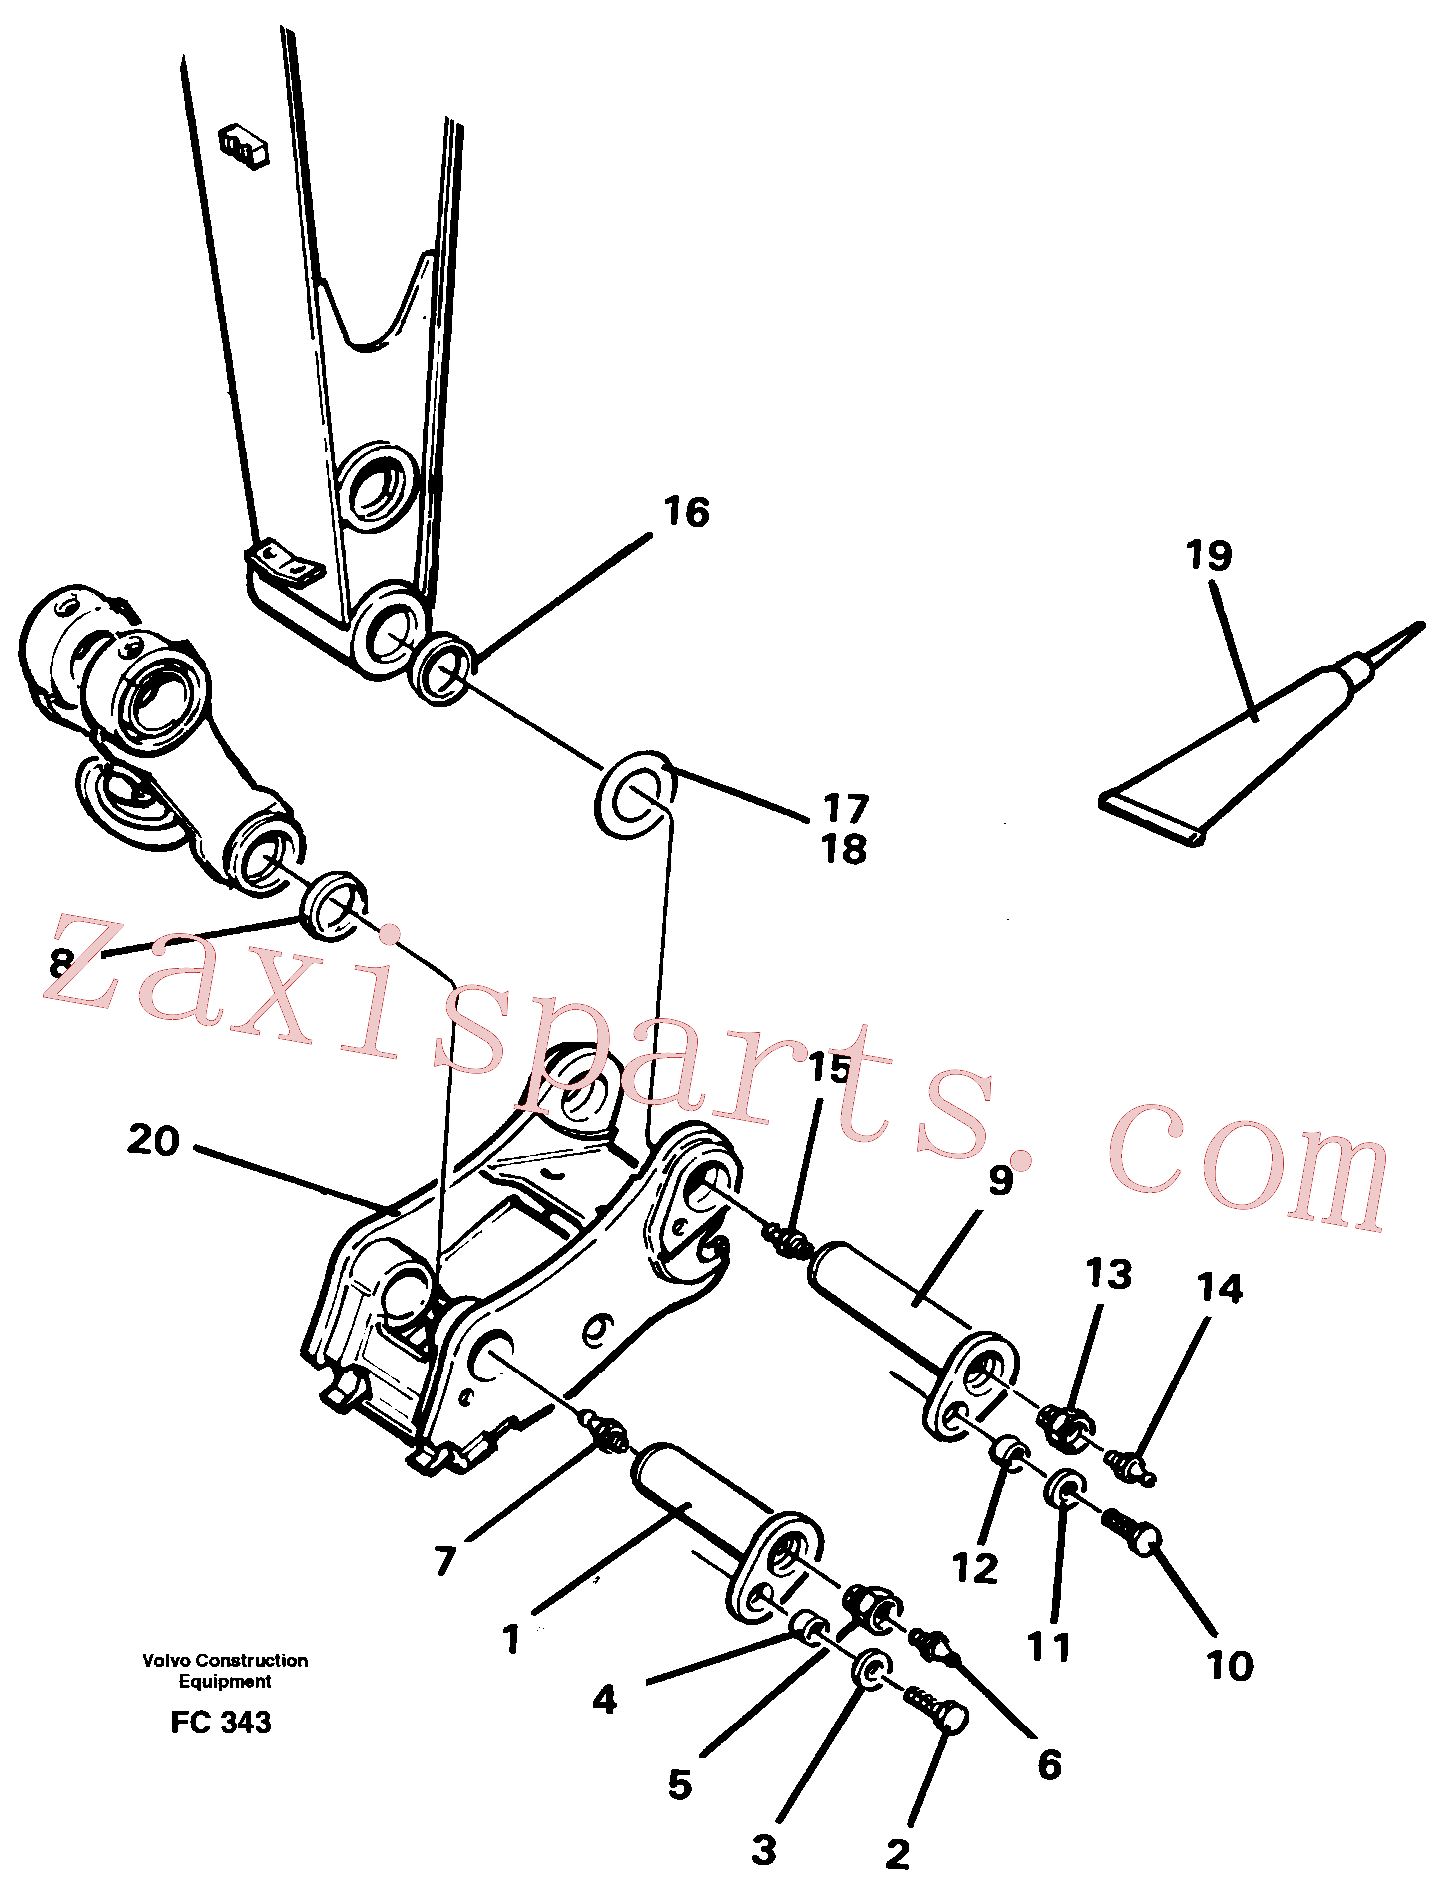 VOE14235651 for Volvo Attachements, dipper arm-quickfit(FC343 assembly)